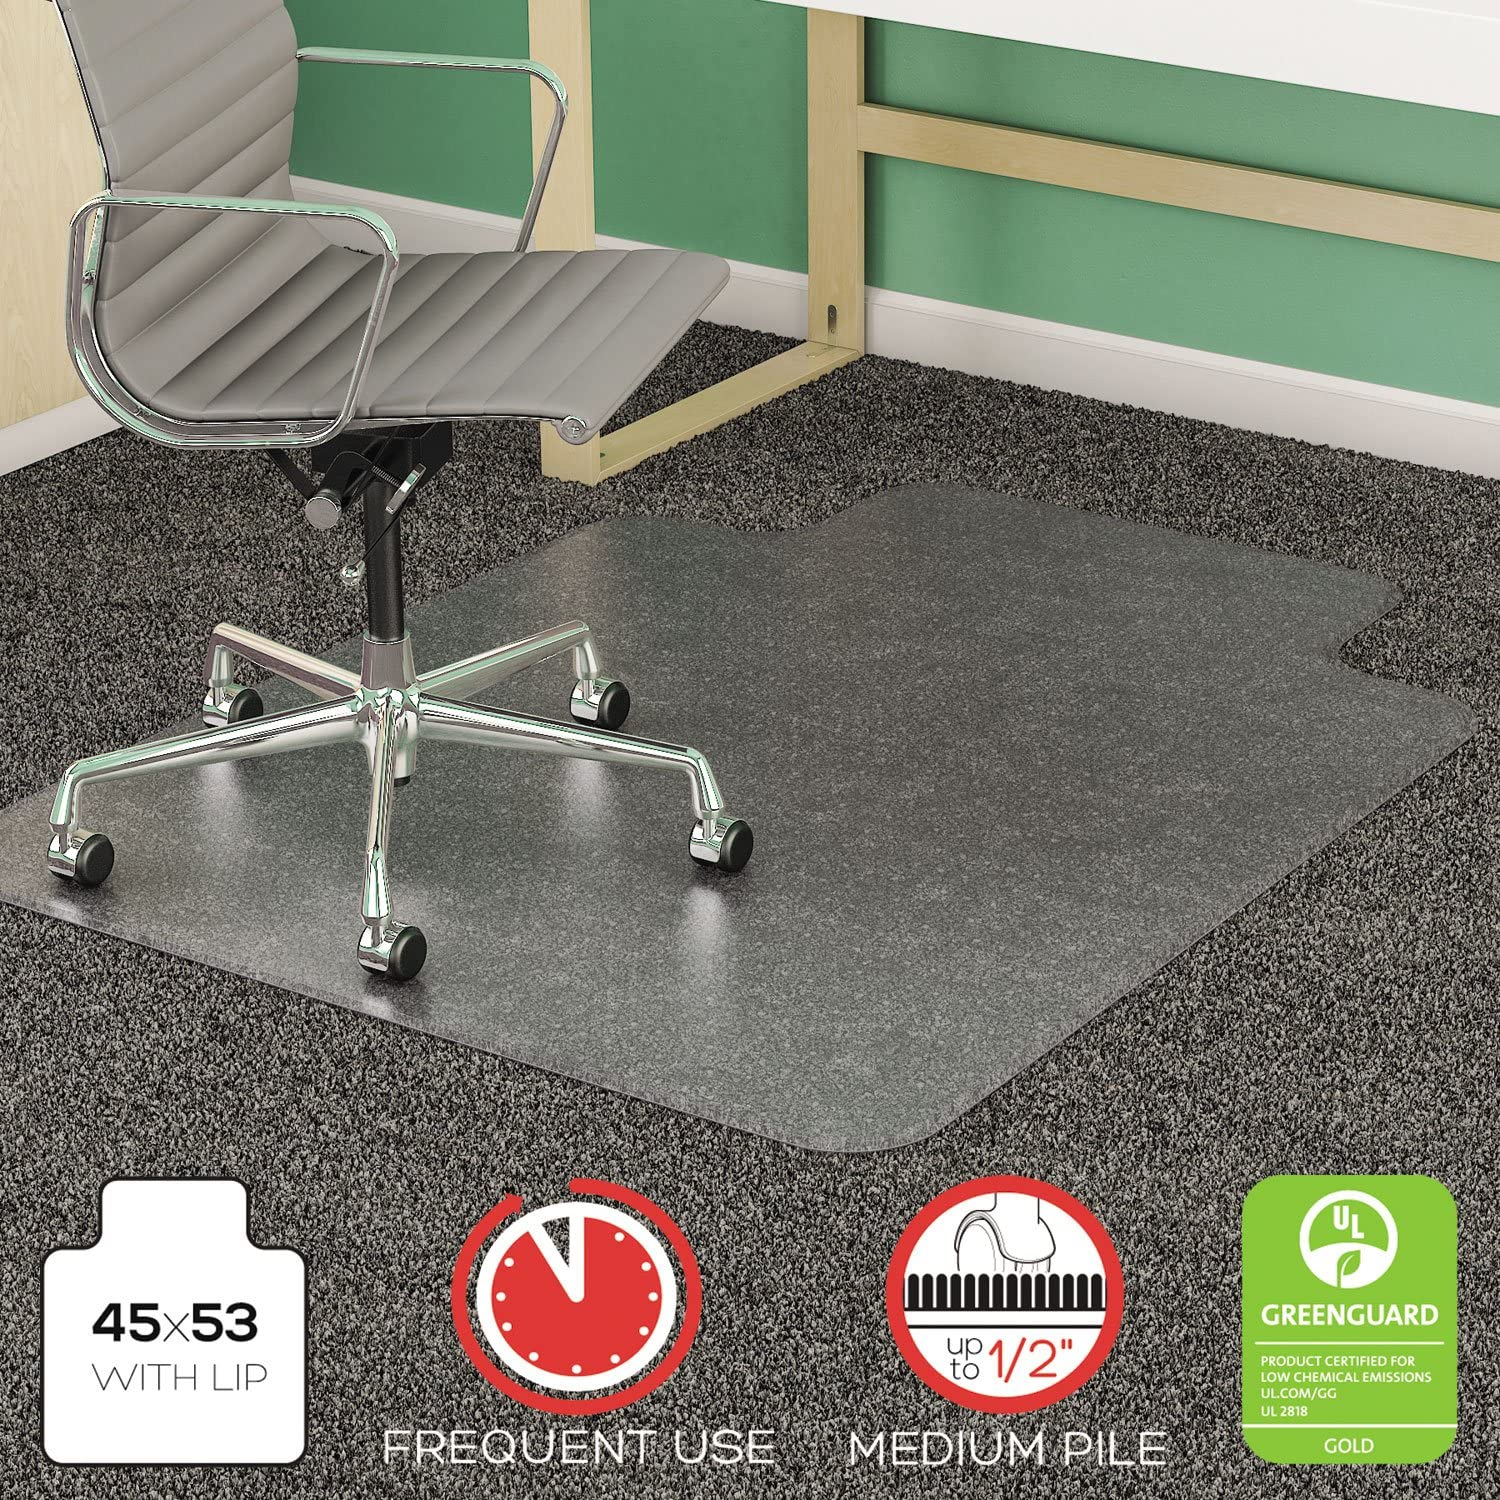 DEFCM14233 - SuperMat Frequent Use Chair Mat for Medium Pile Carpet